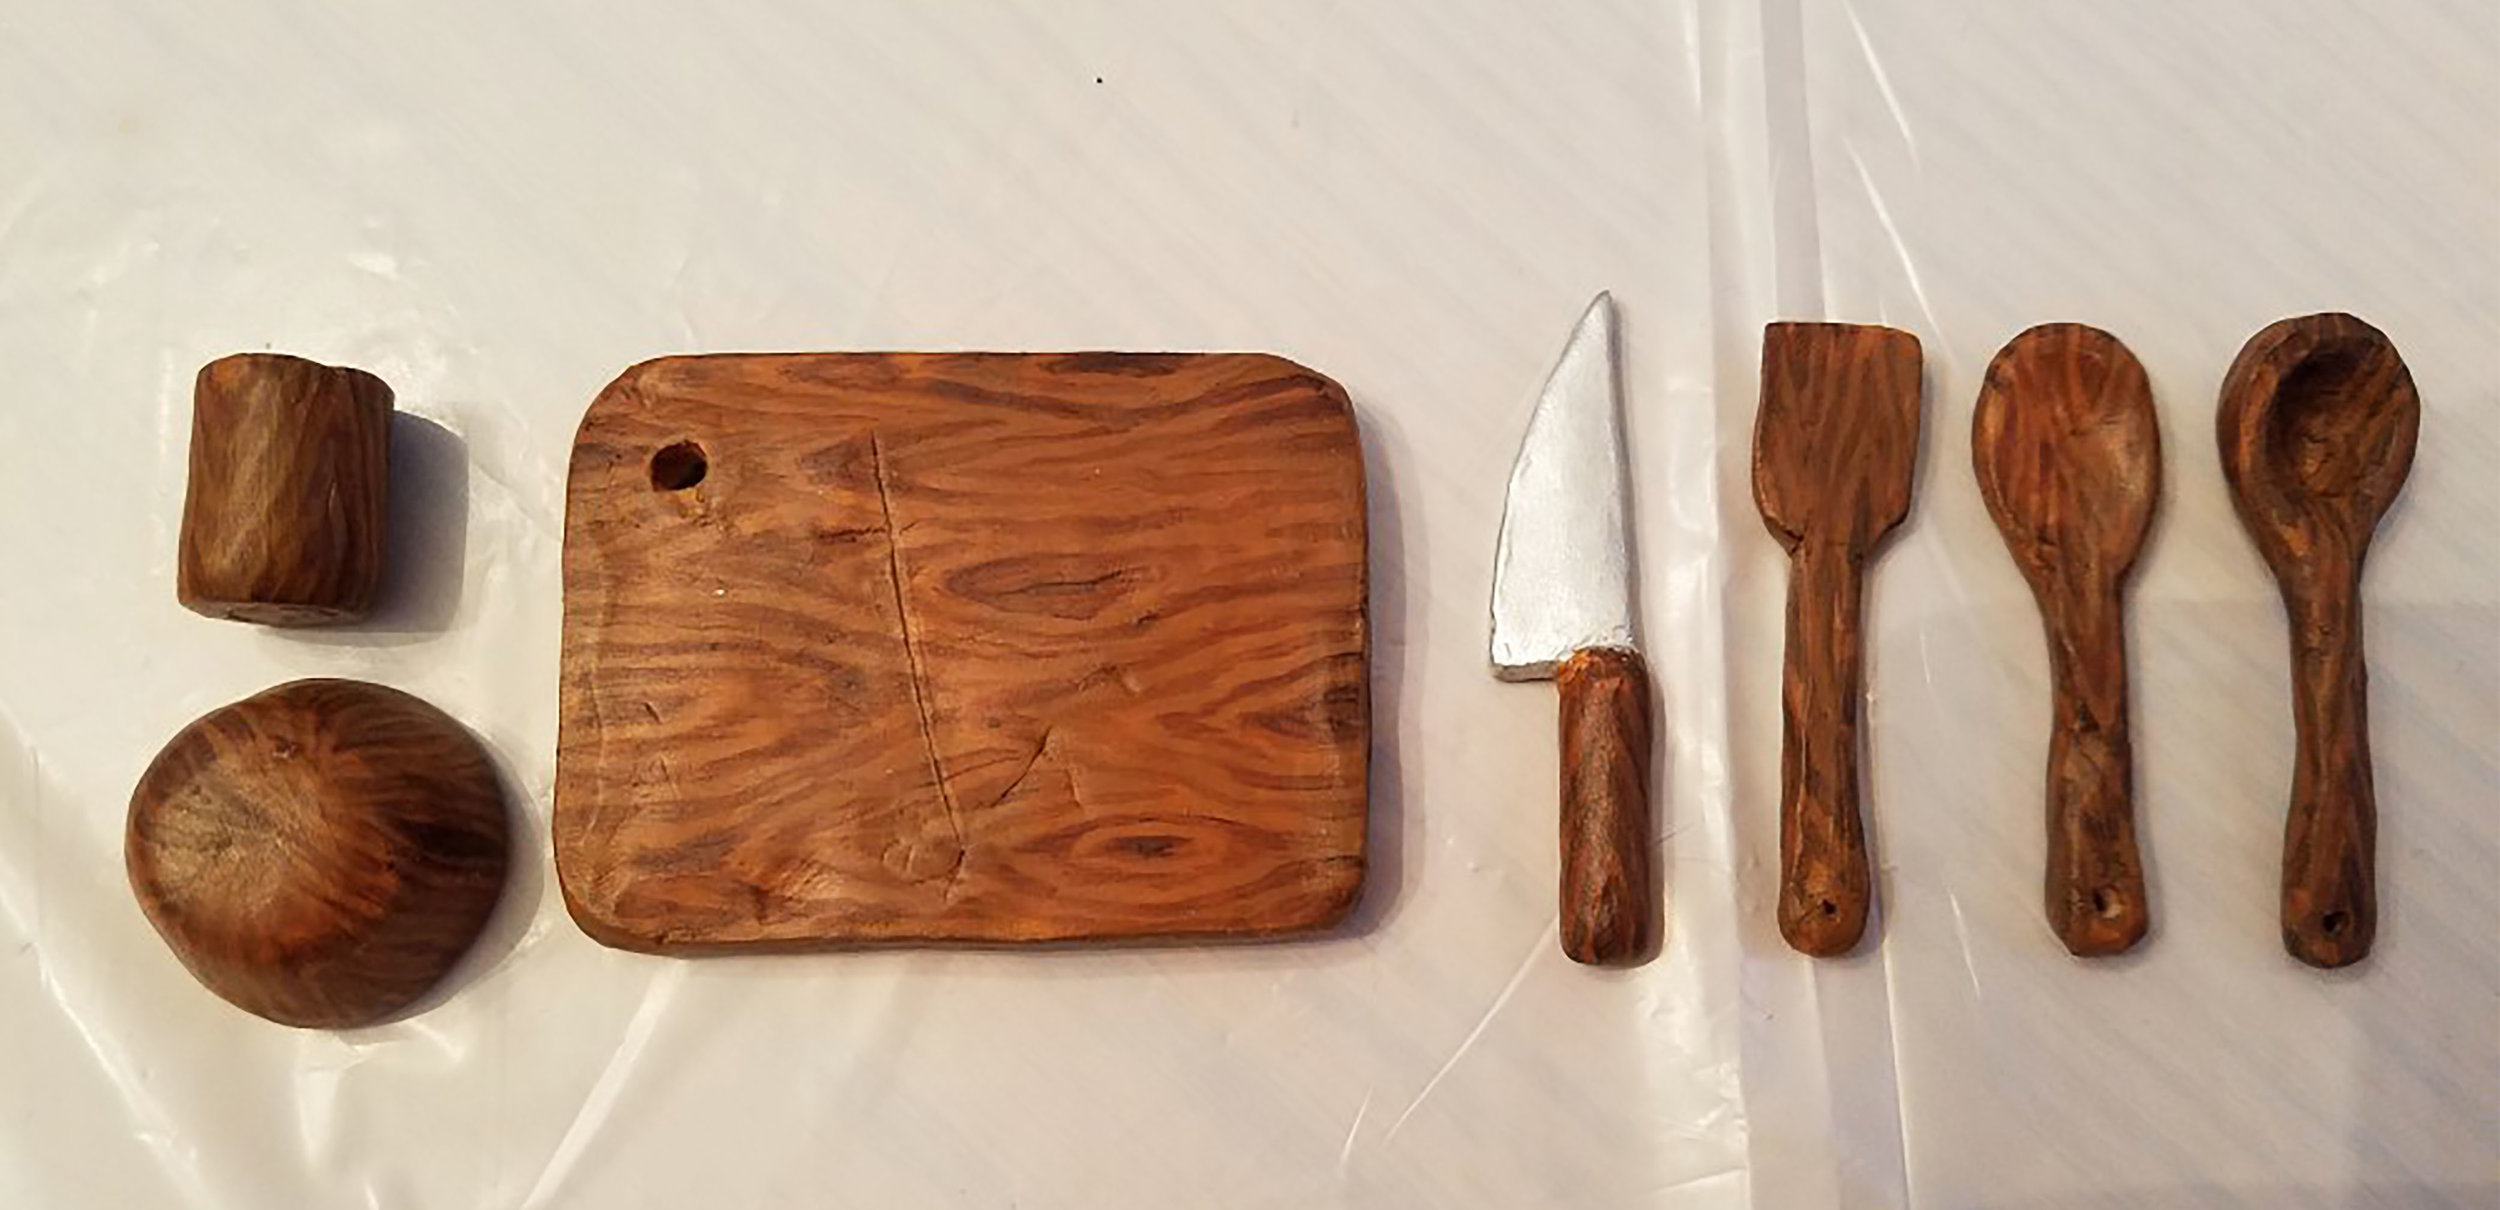 wooden cutting board and utensils.jpg